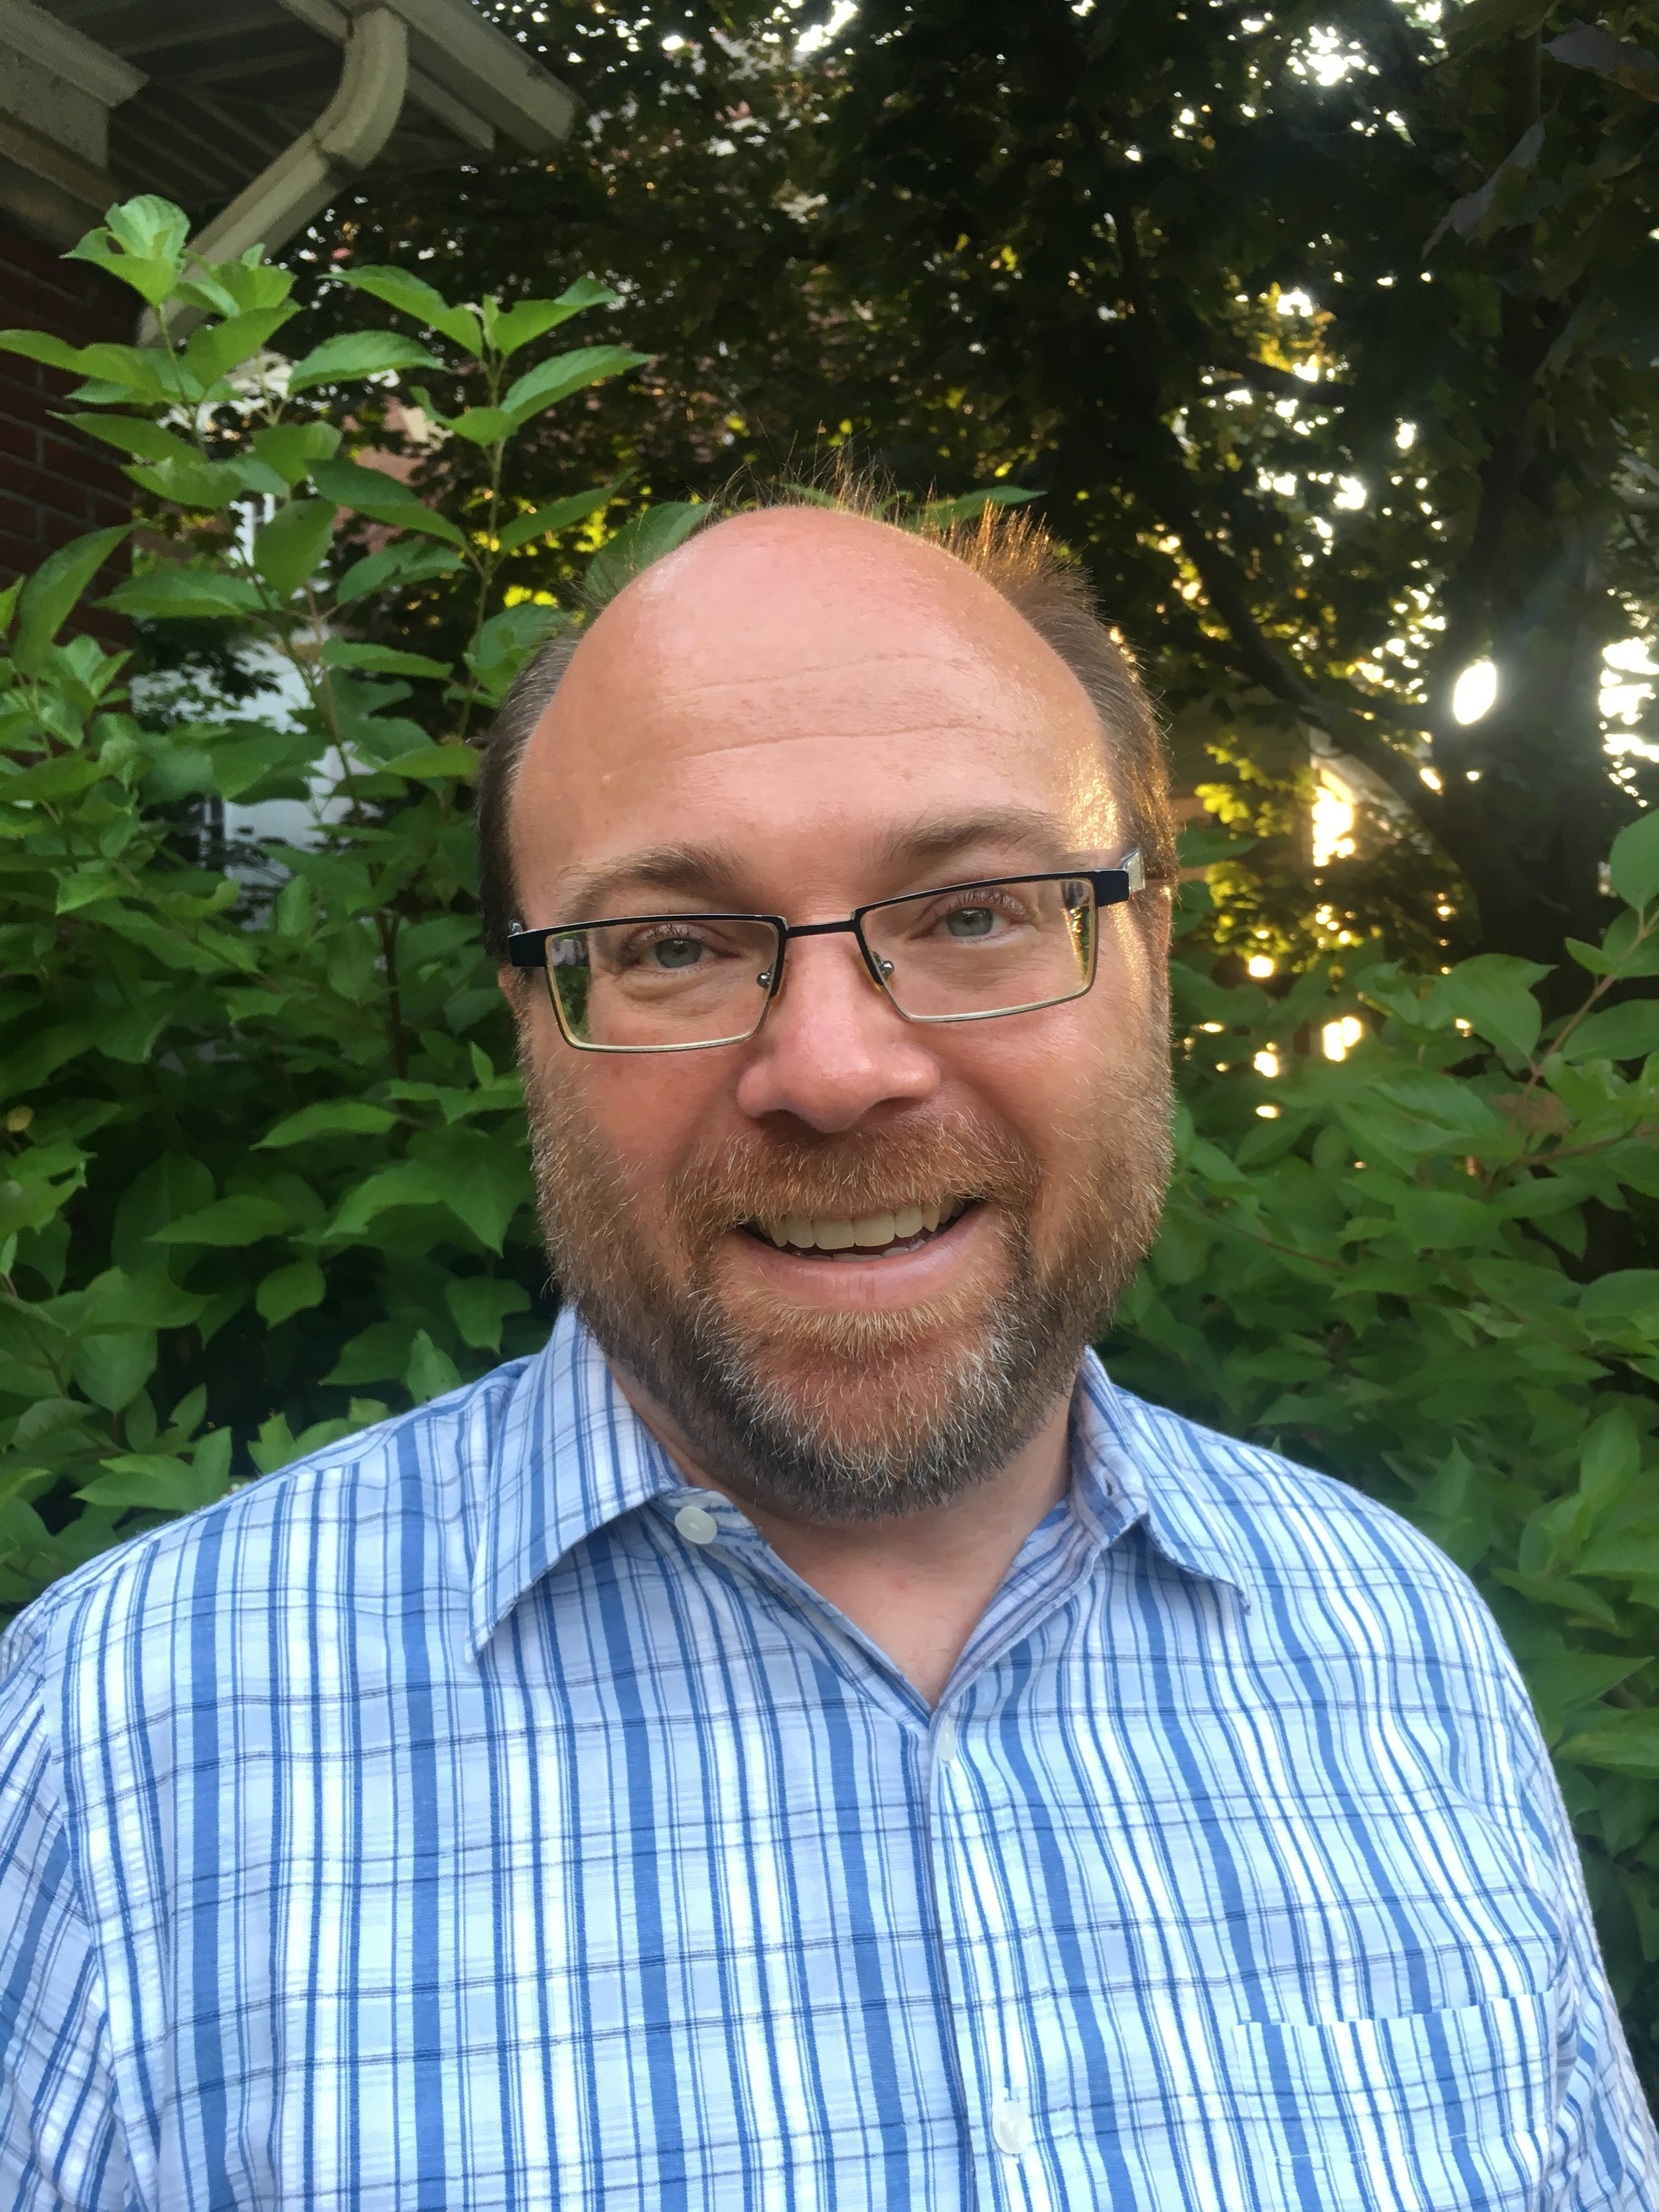 Dr. Buchanan is an Advisor Engineer at the Naval Nuclear Laboratory. His expertise is in computational fluid dynamics and validation experiments for single- and two-phase flows. Jack has published research in bio-fluid mechanics, gas-liquid two-phase flows, and boiling heat transfer spanning experimental methods and computational predictions. He serves as a reviewer for Department of Energy research proposals, several journals, and ASME and ANS conferences. He co-organized the first Symposium on CFD Verification and Validation at the ASME Fluids Engineering Division Summer Meeting. In his free time, Jack enjoys hiking, music, and is a lead mentor for FRC Robotics Team 3260.  He holds a B.S in Mechanical Engineering from Johns Hopkins University, and an M.S. and Ph.D. in Mechanical Engineering from North Carolina State University with a Computational Engineering and Sciences minor.